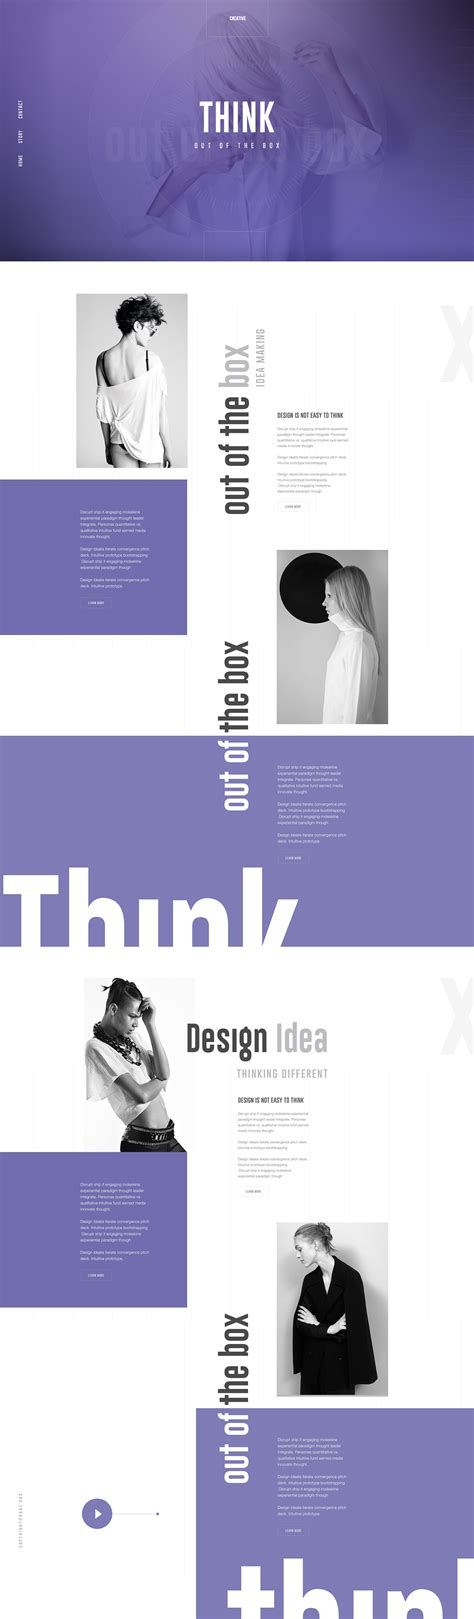 boxed layout inspiration think out of the box by surja sen das raj on inspirationde